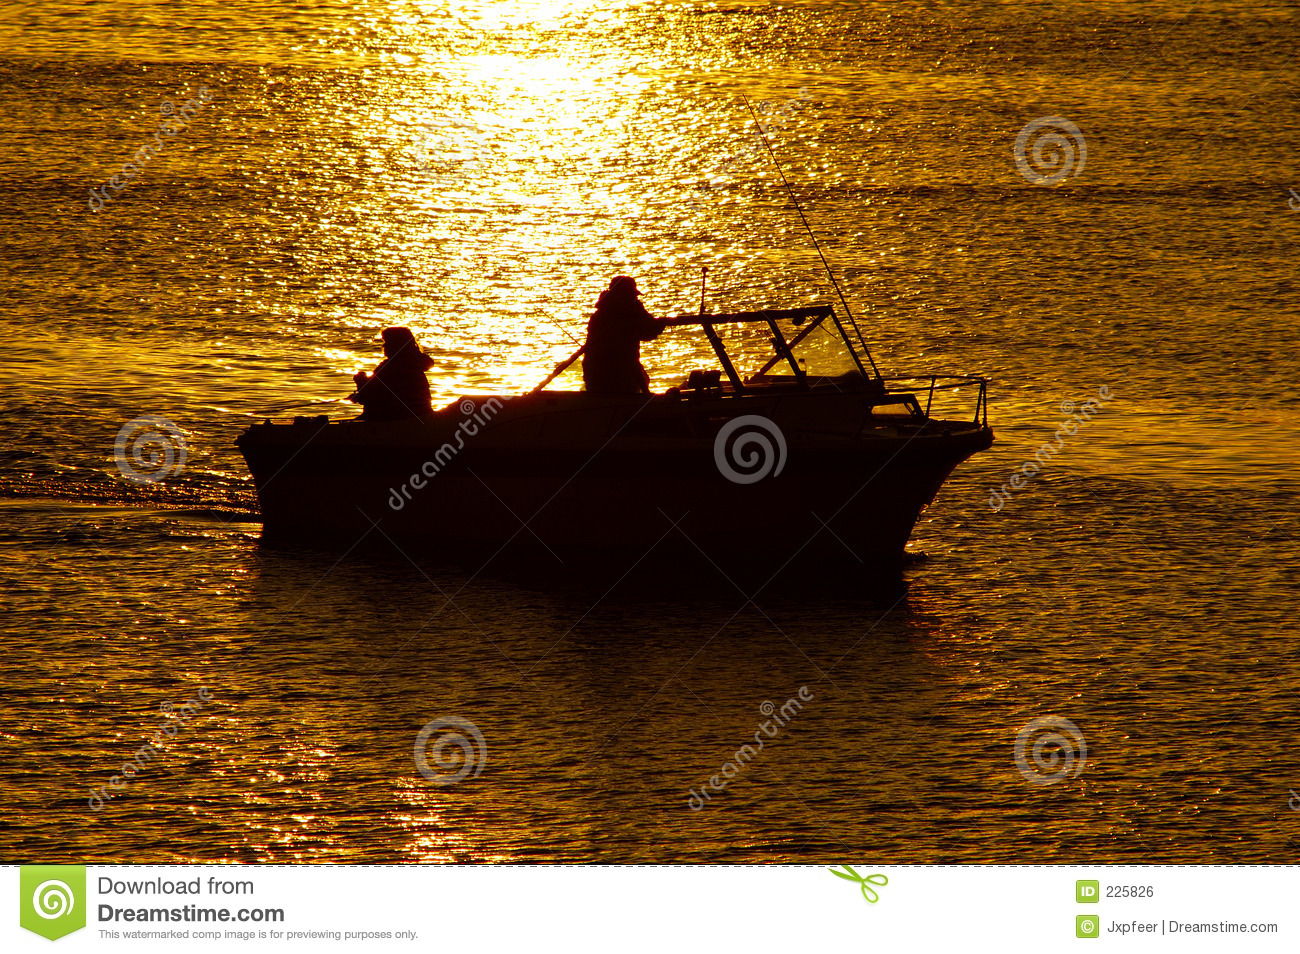 Boating at sunset